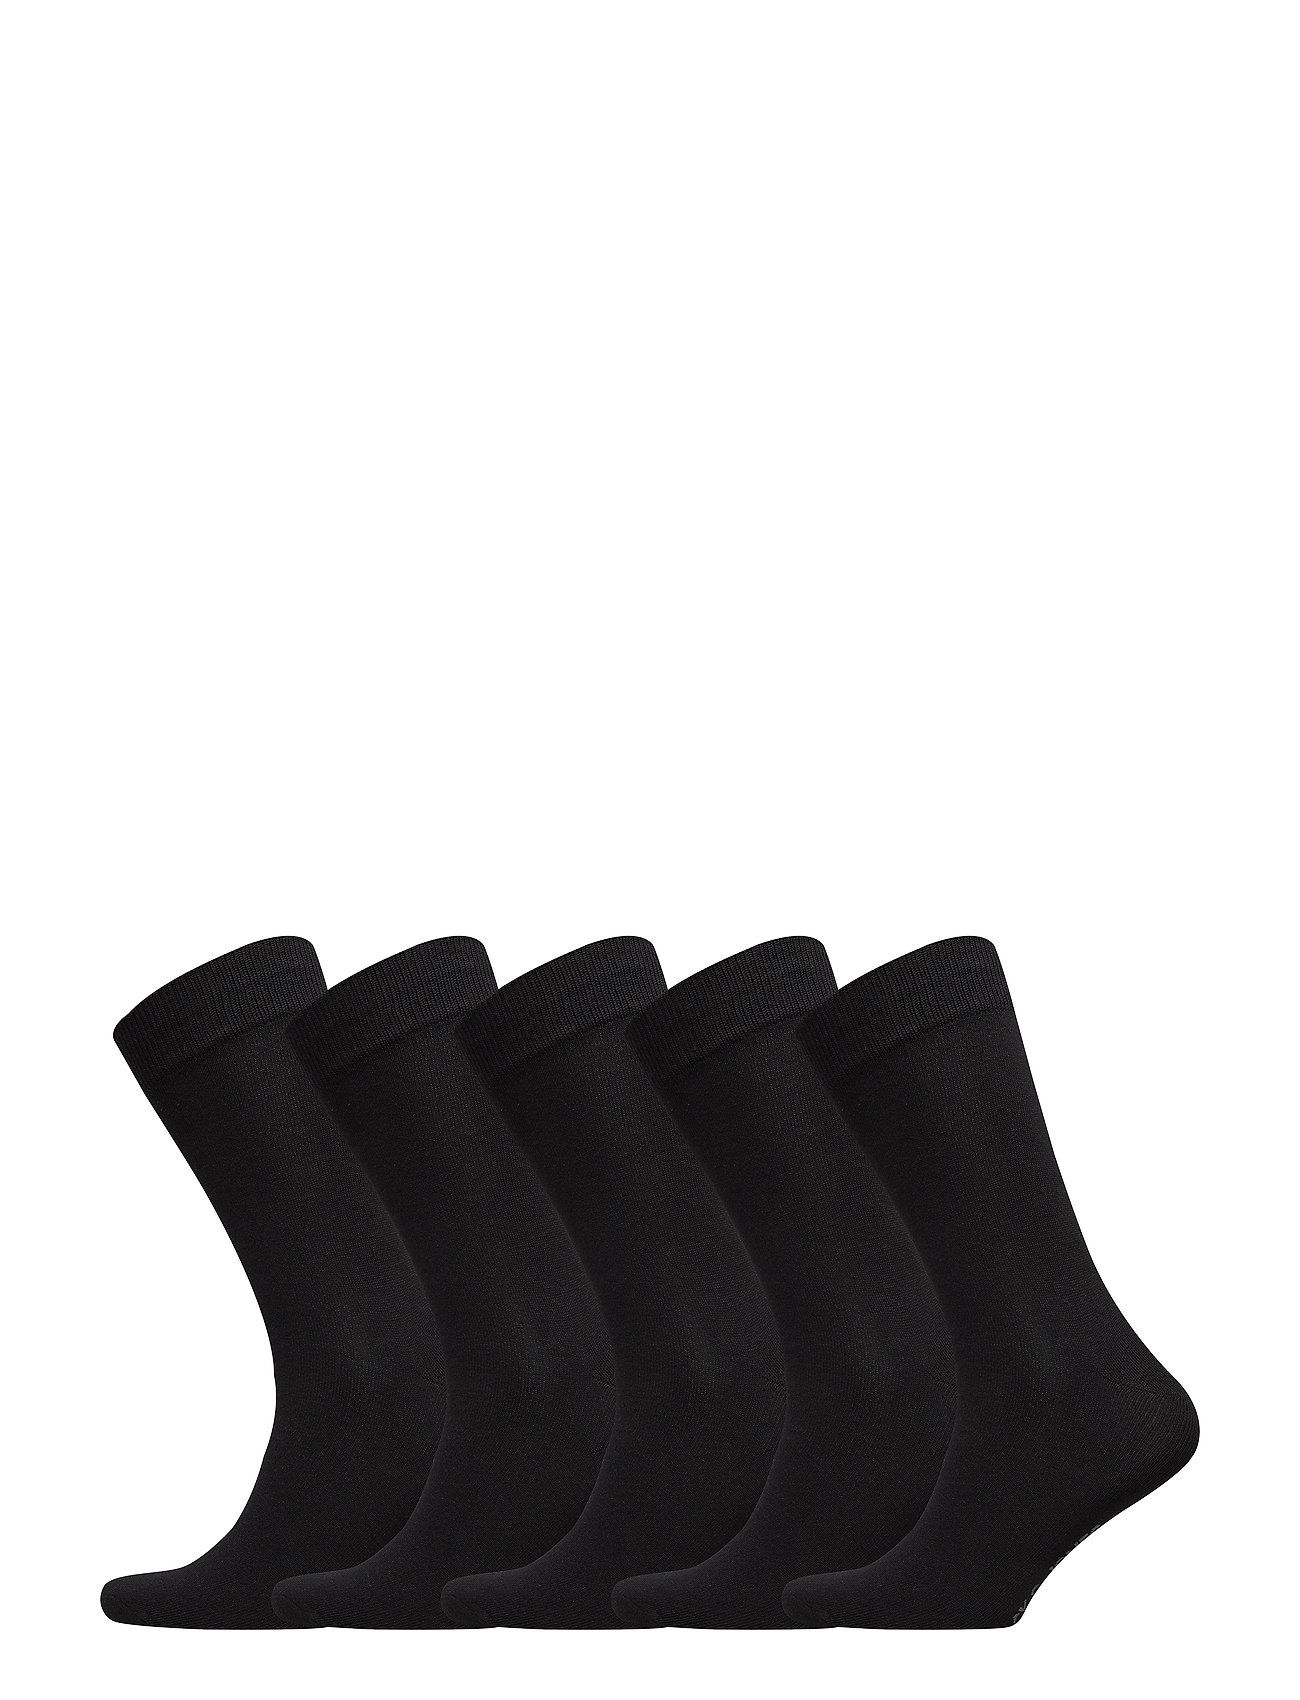 Jack & Jones JACJENS SOCK 5 PACK NOOS - BLACK